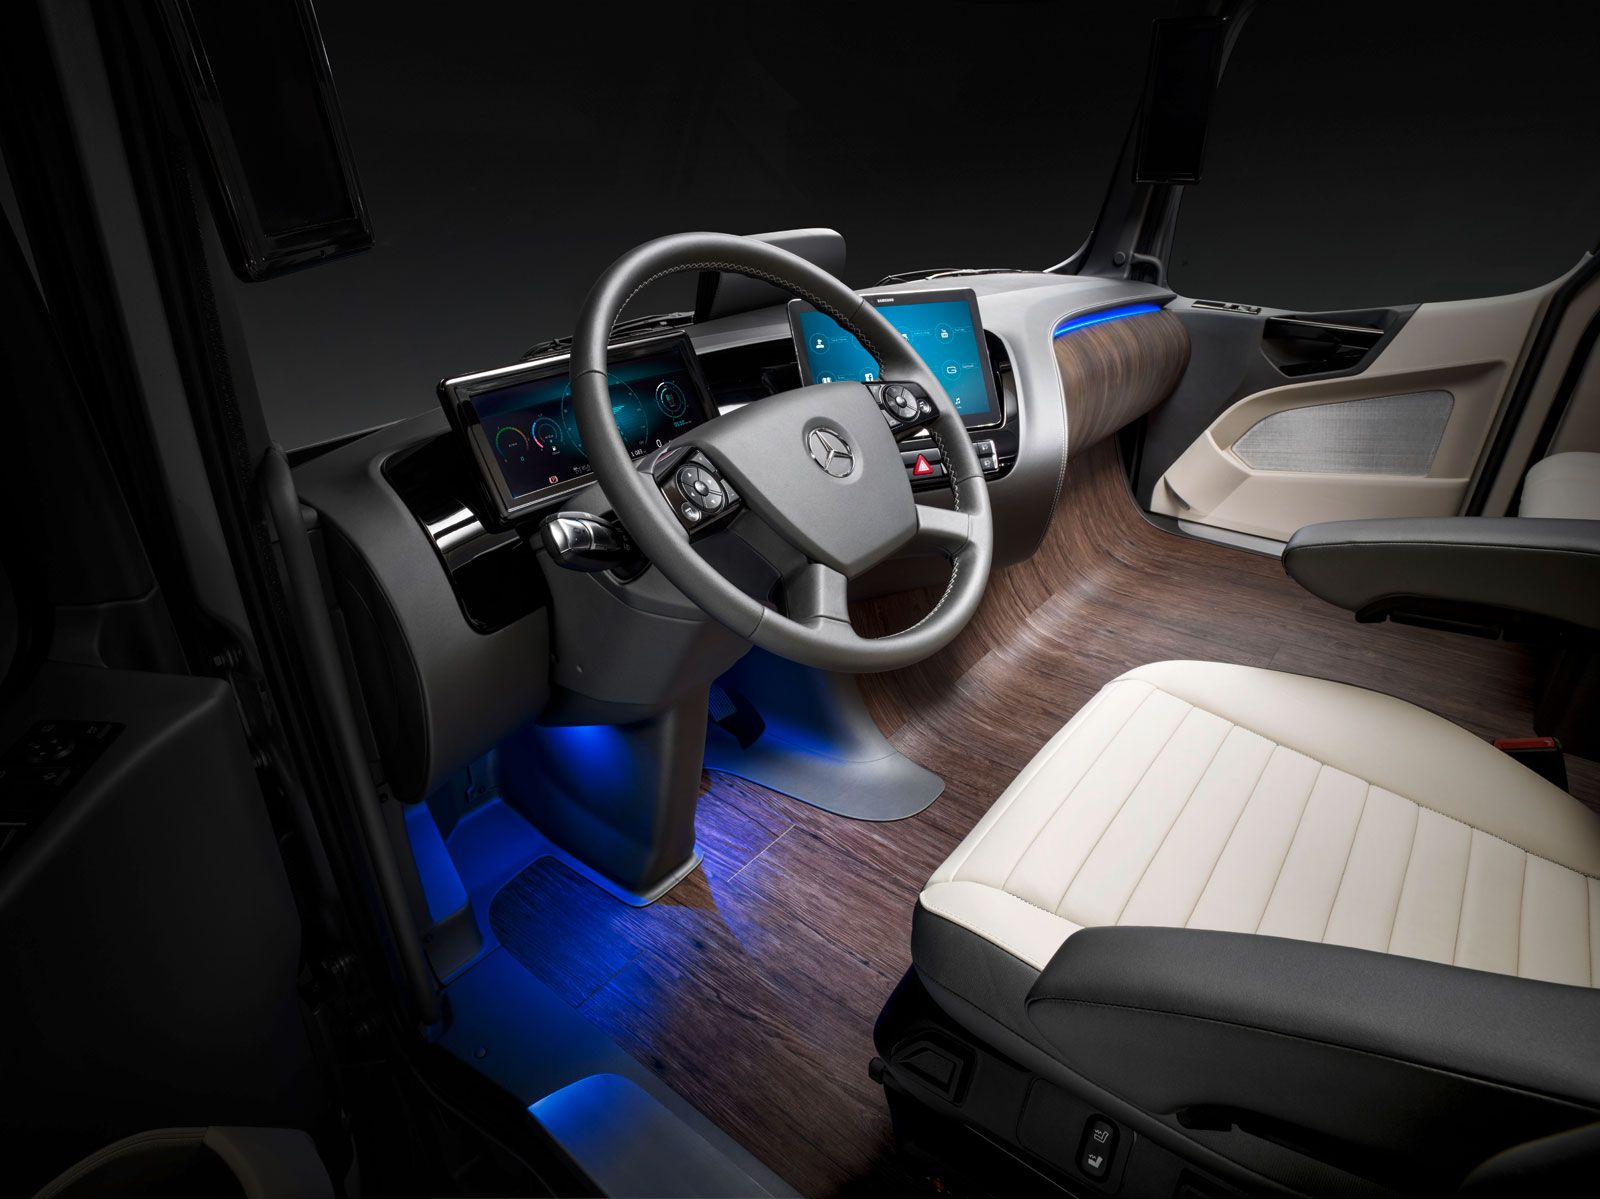 Mercedes Benz Future Truck 2025 Concept Interior With Images